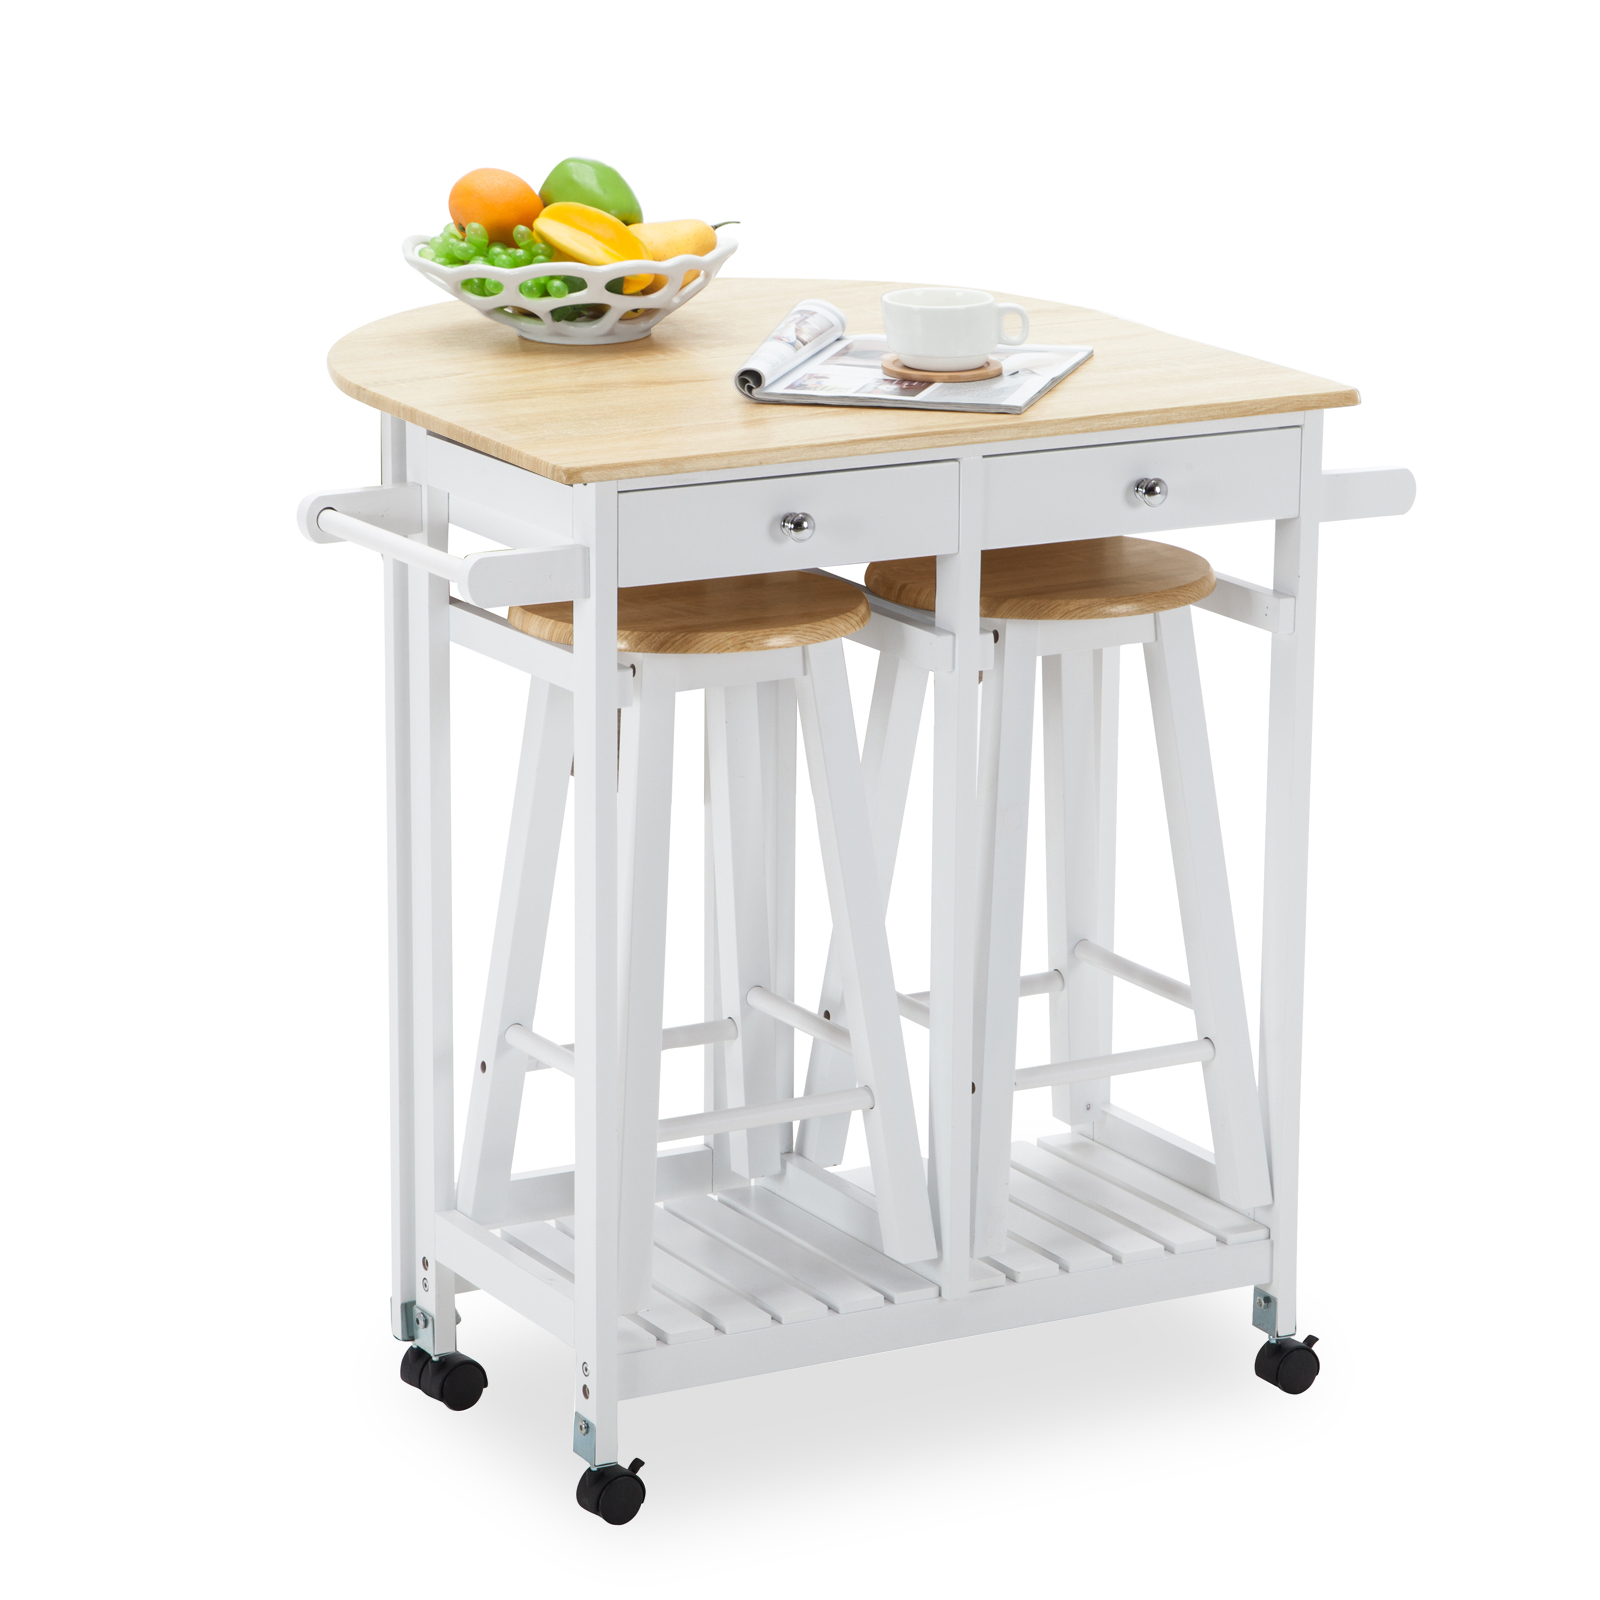 Kitchen island rolling trolley cart storage dinning table for Kitchen island dining table